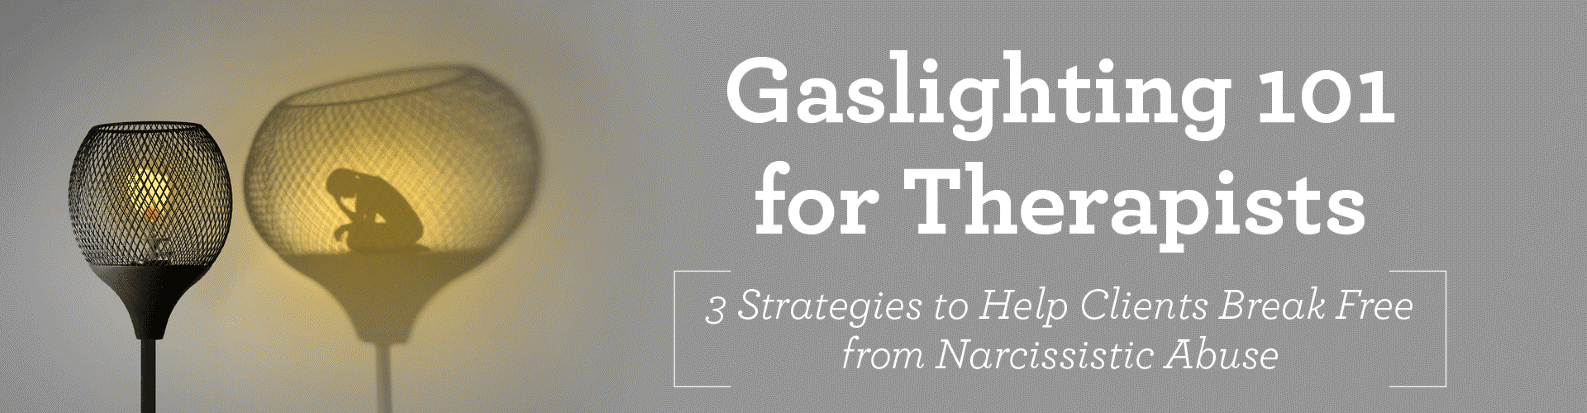 Gaslighting 101 for Therapists:    3 Strategies to Help Clients Break Free from Narcissistic Abuse